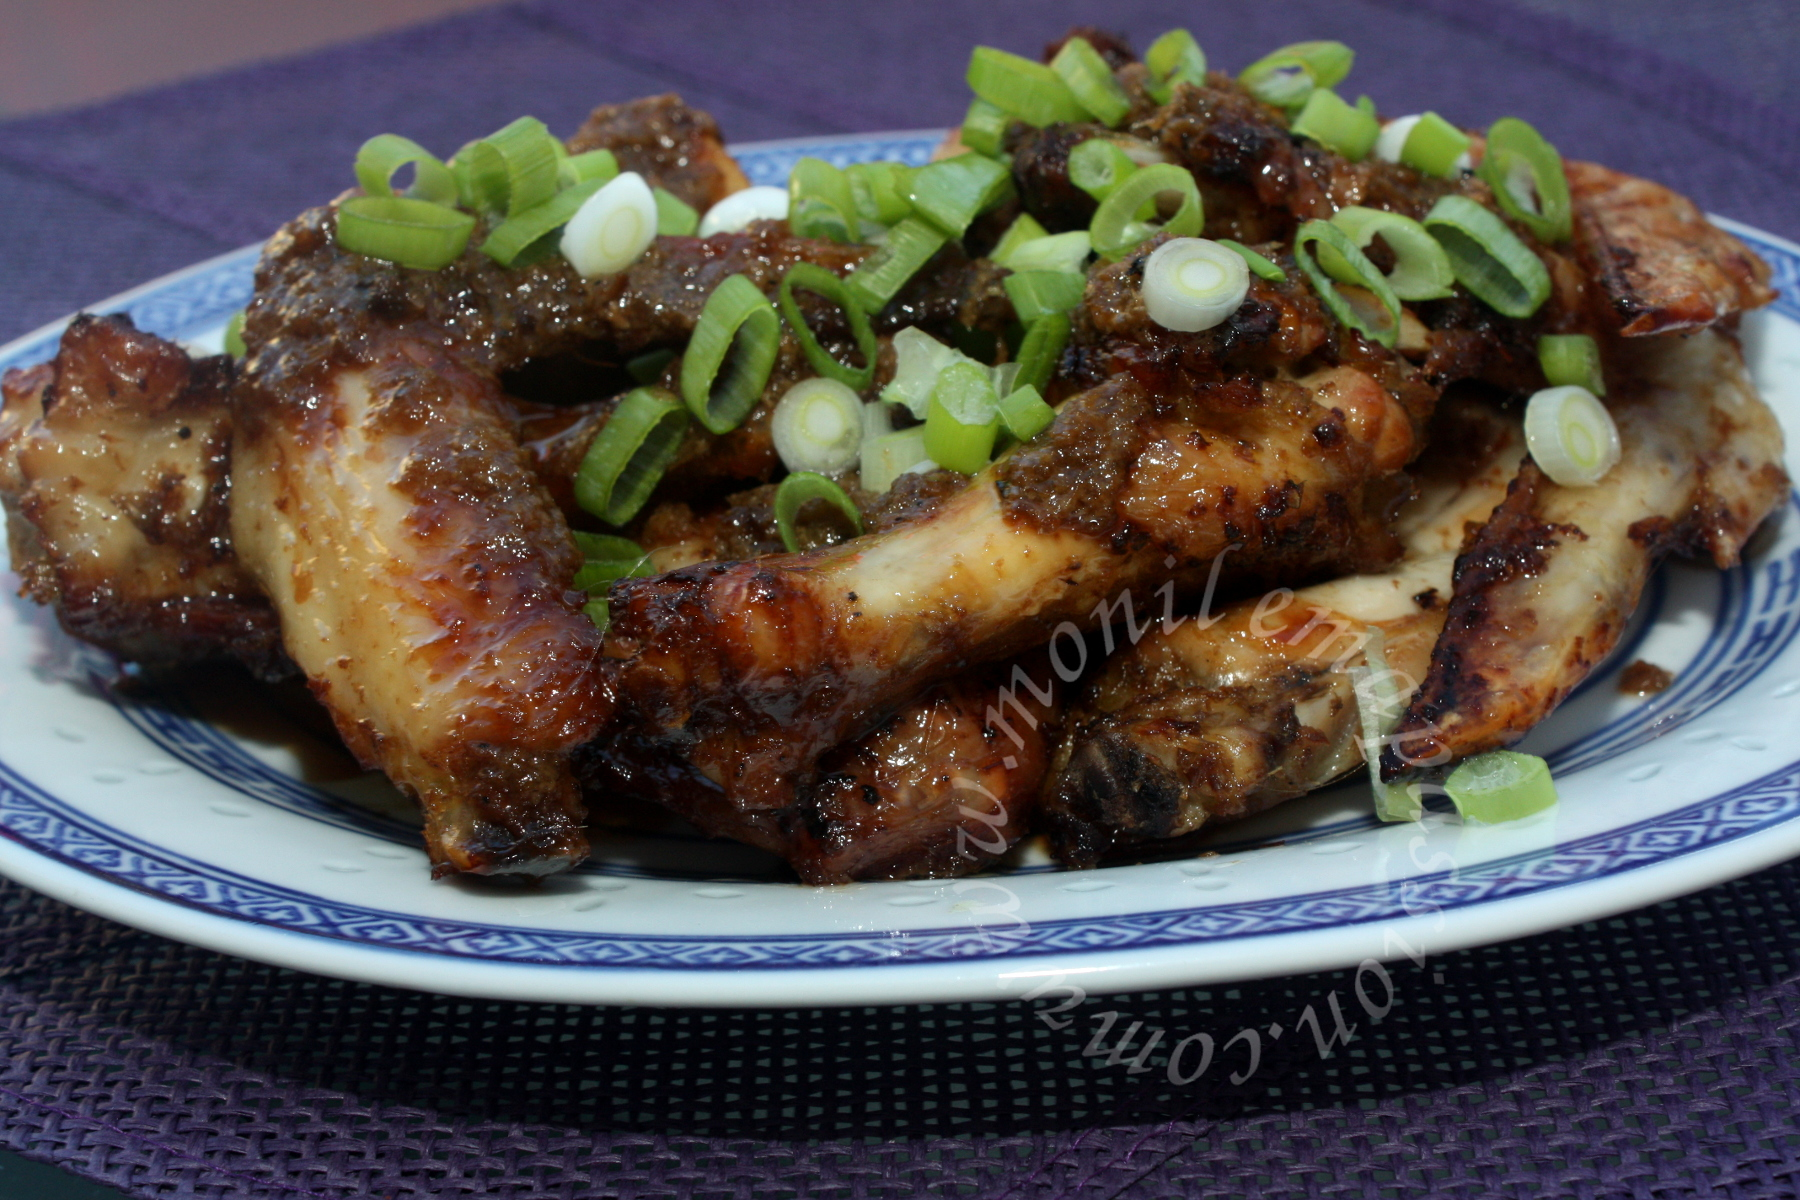 Ailes de poulet façon malaise – Malaysian style chicken wings